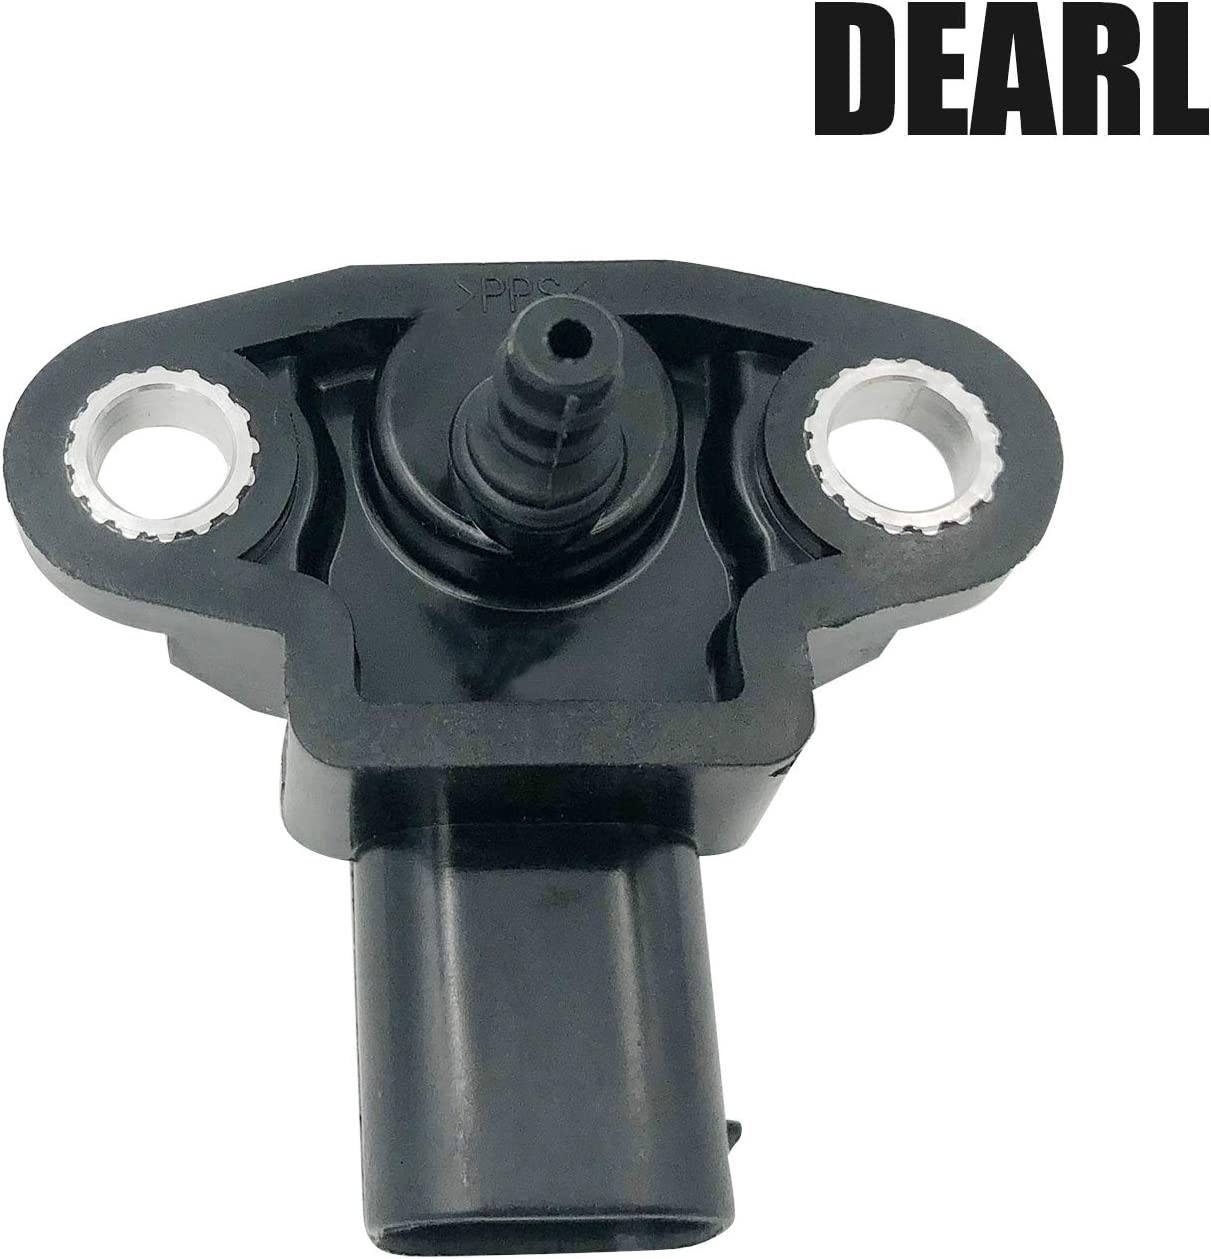 Manifold Mesa Mall Absolute Air Pressure Map 11-1 07-09 E320 fits Sensor Online limited product